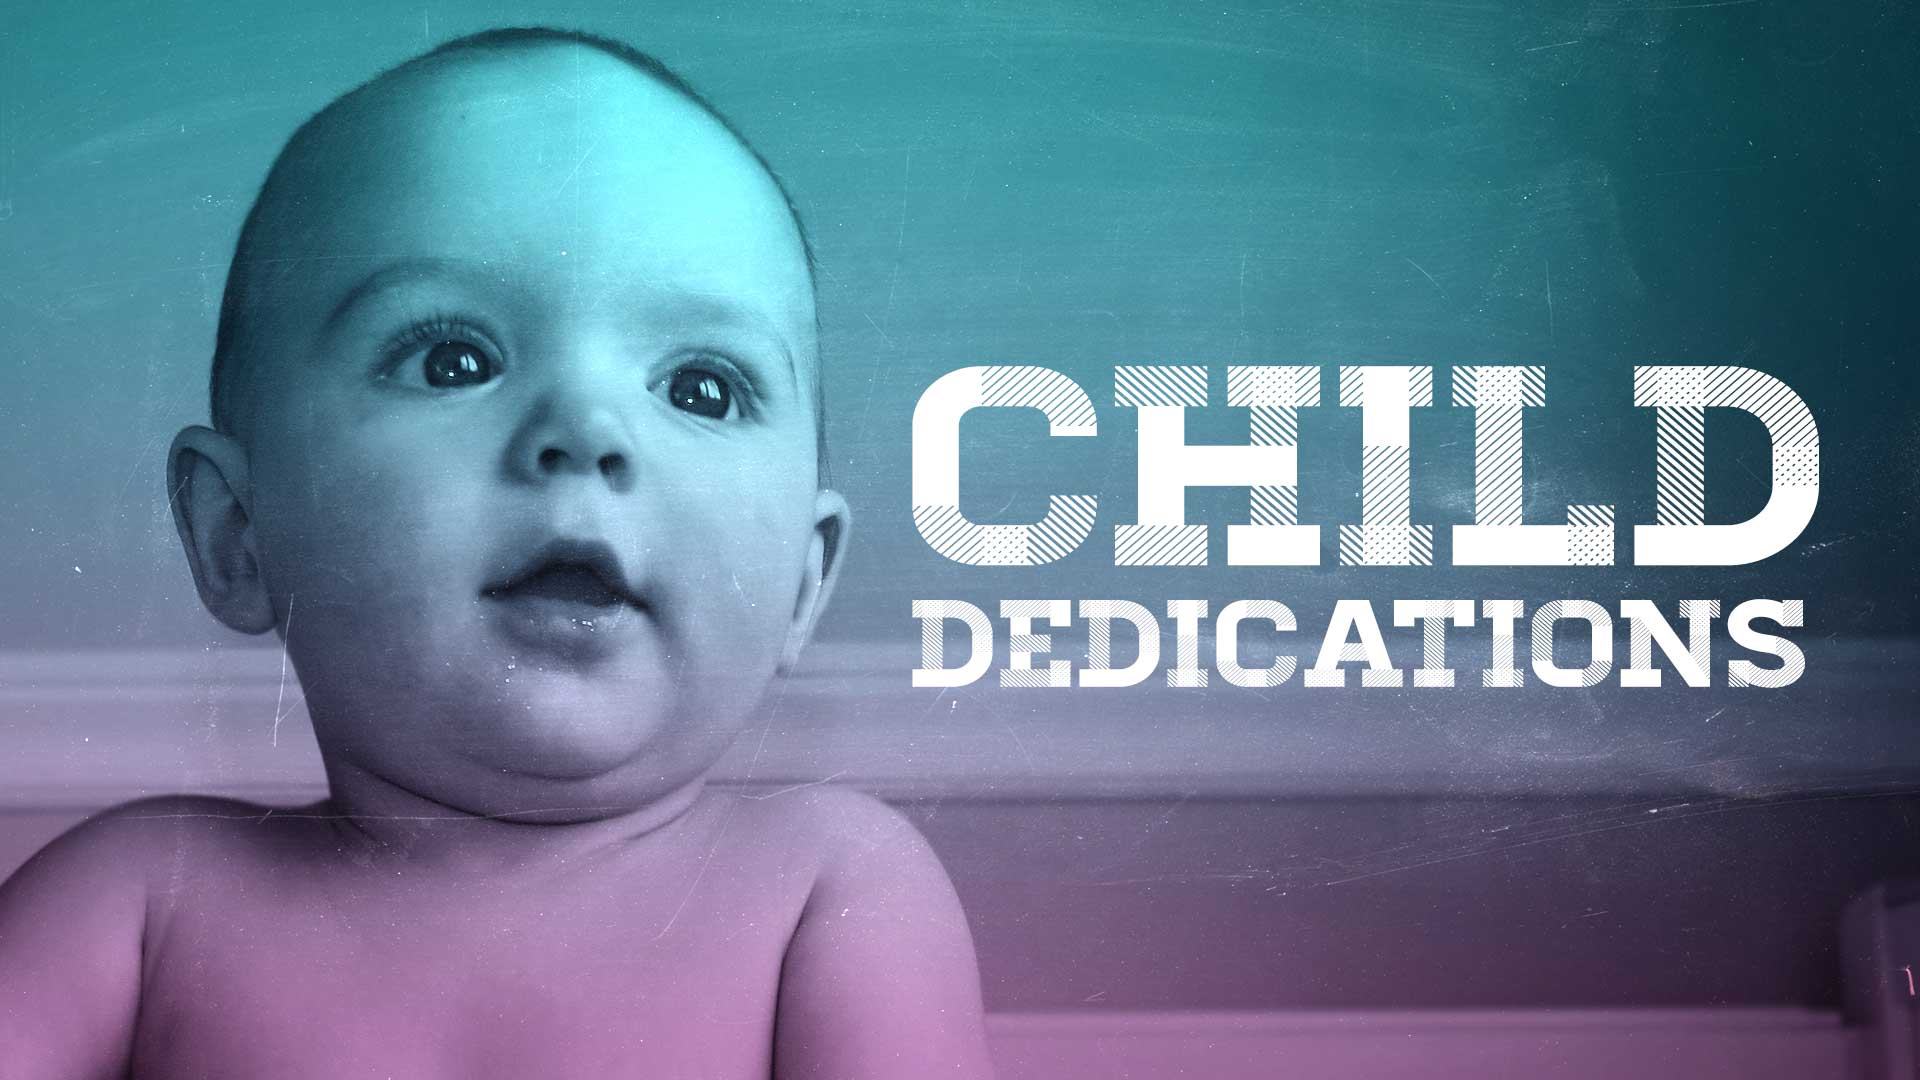 Childdedications